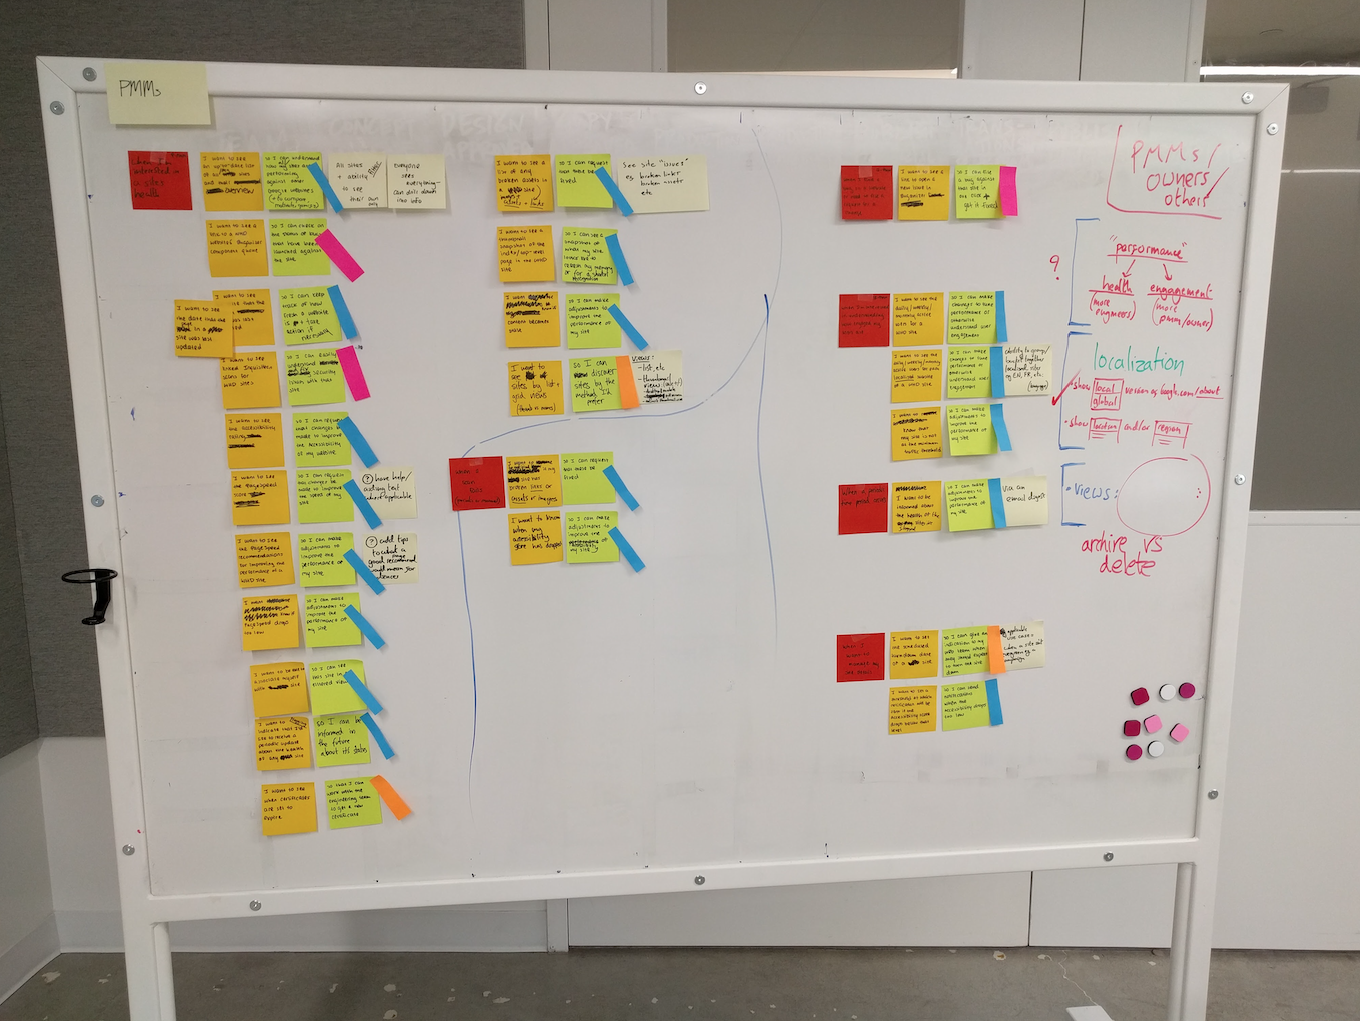 Prioritising job stories using the MoSCoW method